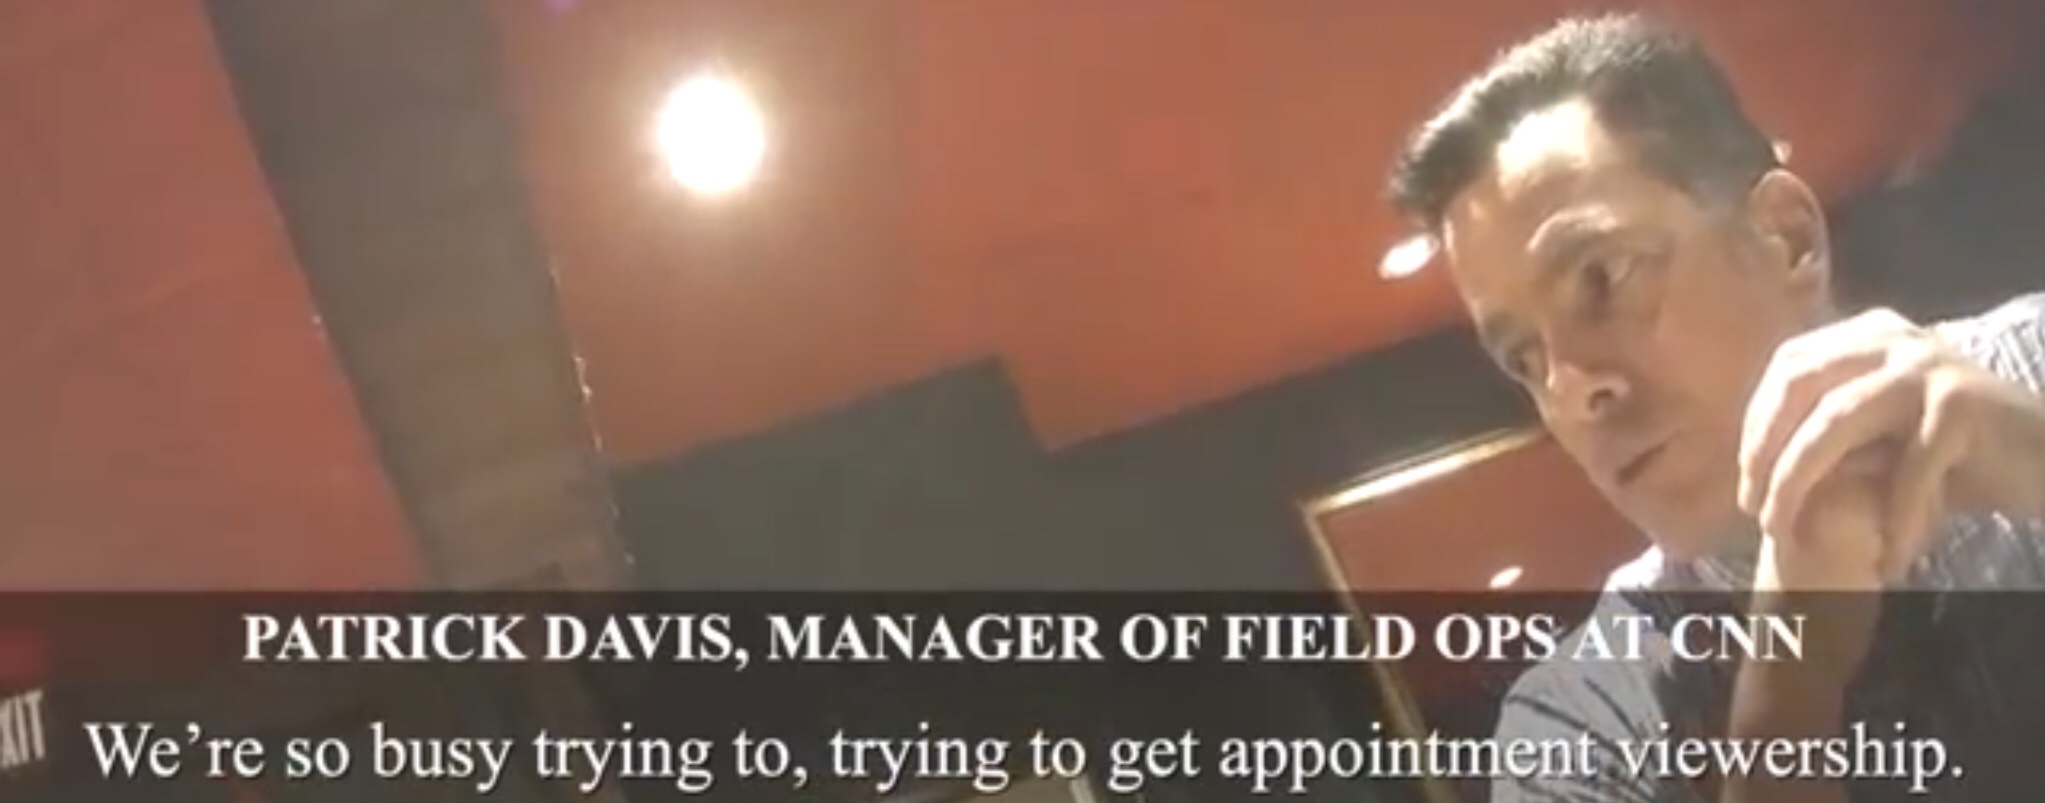 CNN Manager of Field Operations Patrick Davis talks to Project Veritas about his network's liberal bias. YouTube screenshot.